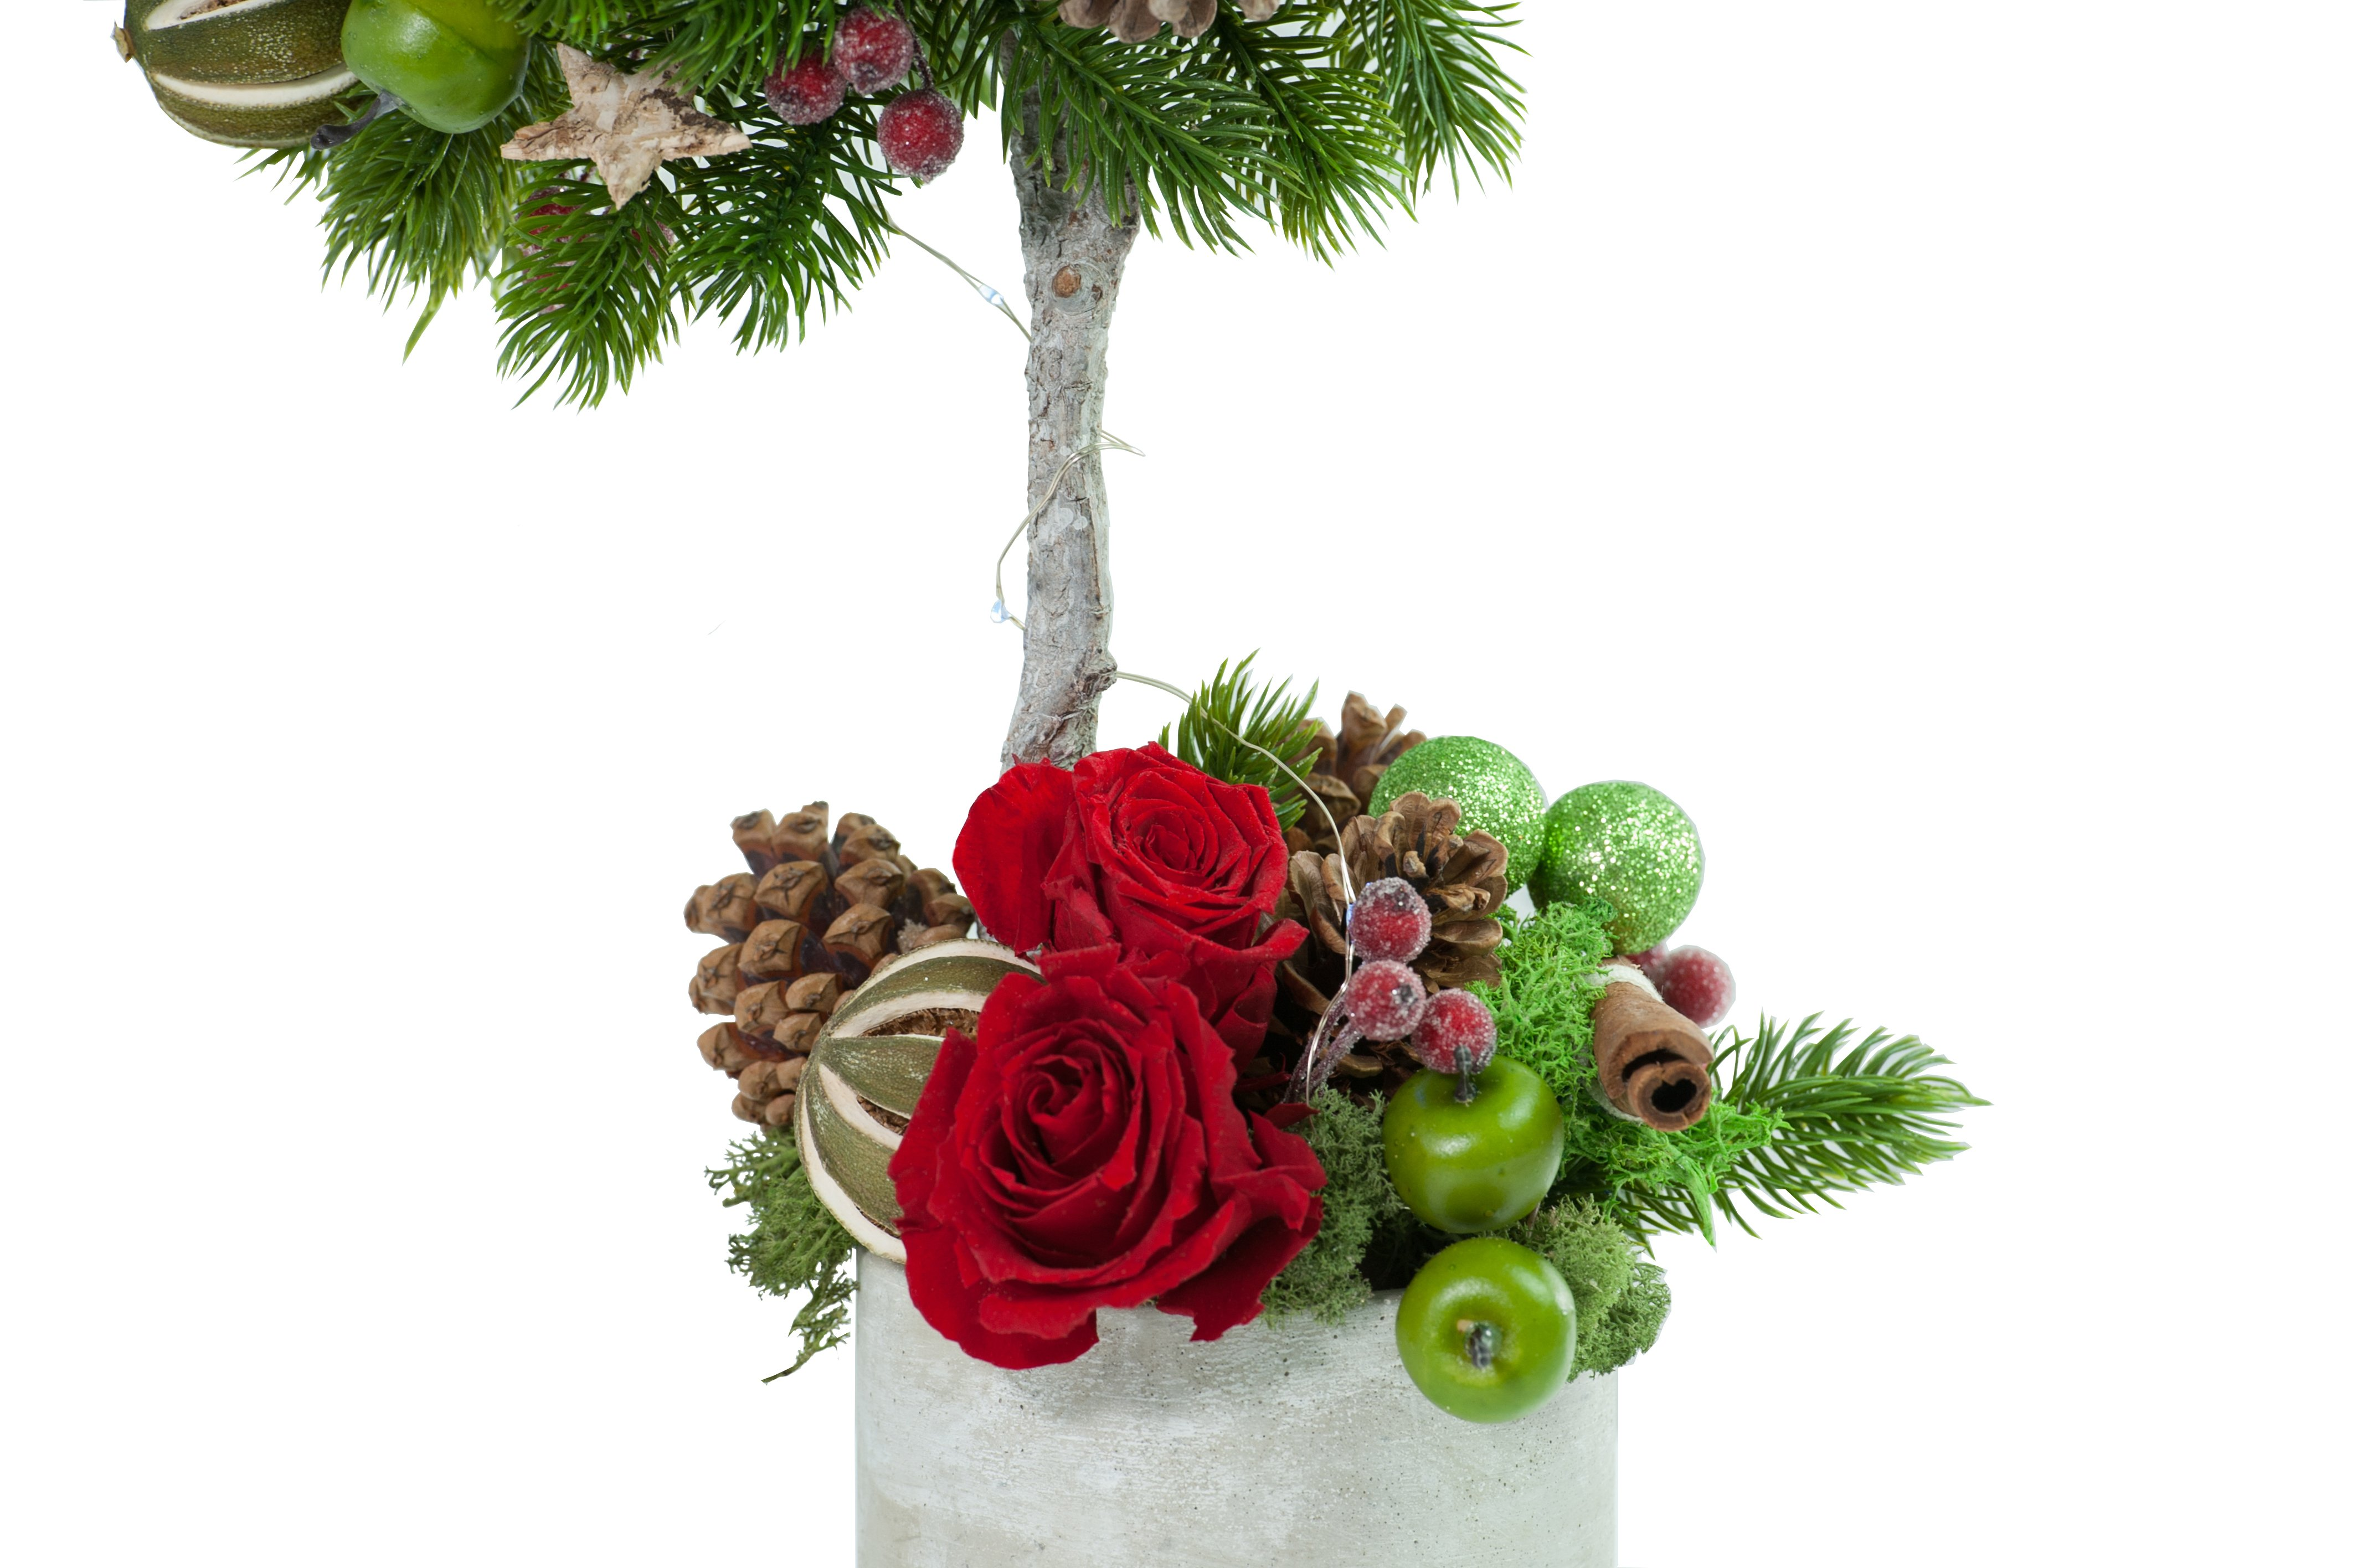 Bespoke Artificial Topiary Christmas Tree Preserved Floral Arrangements Silk Flowers